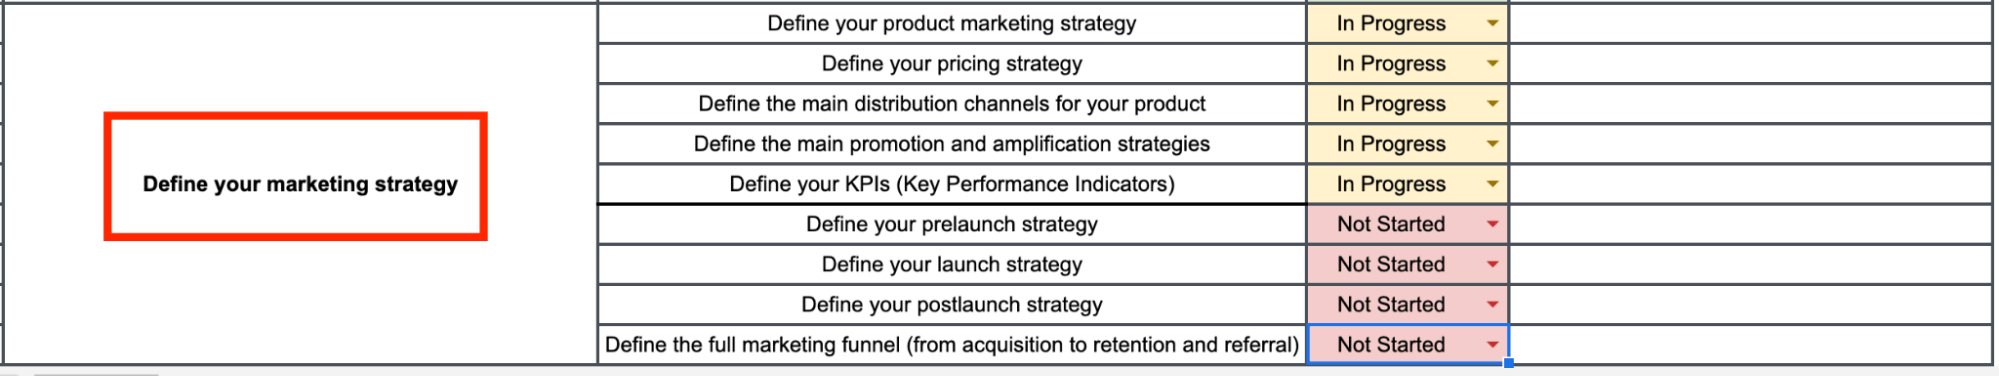 defining your marketing strategy